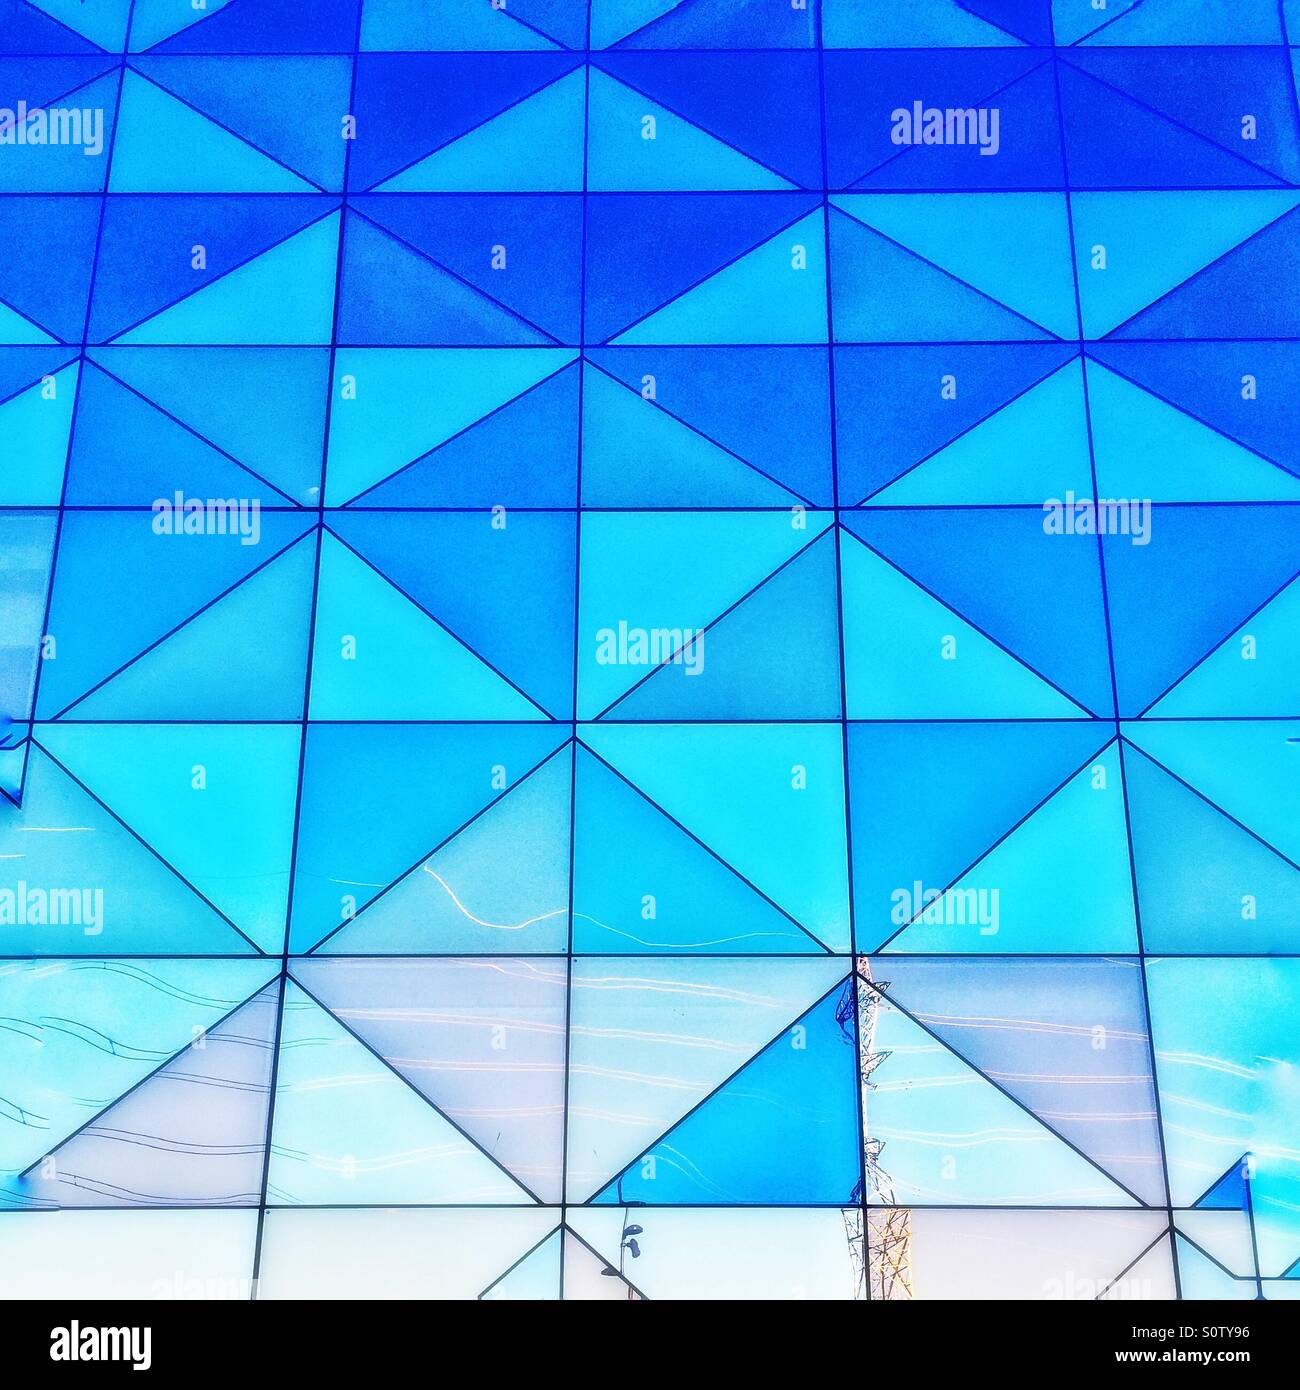 Squares and triangles - Stock Image